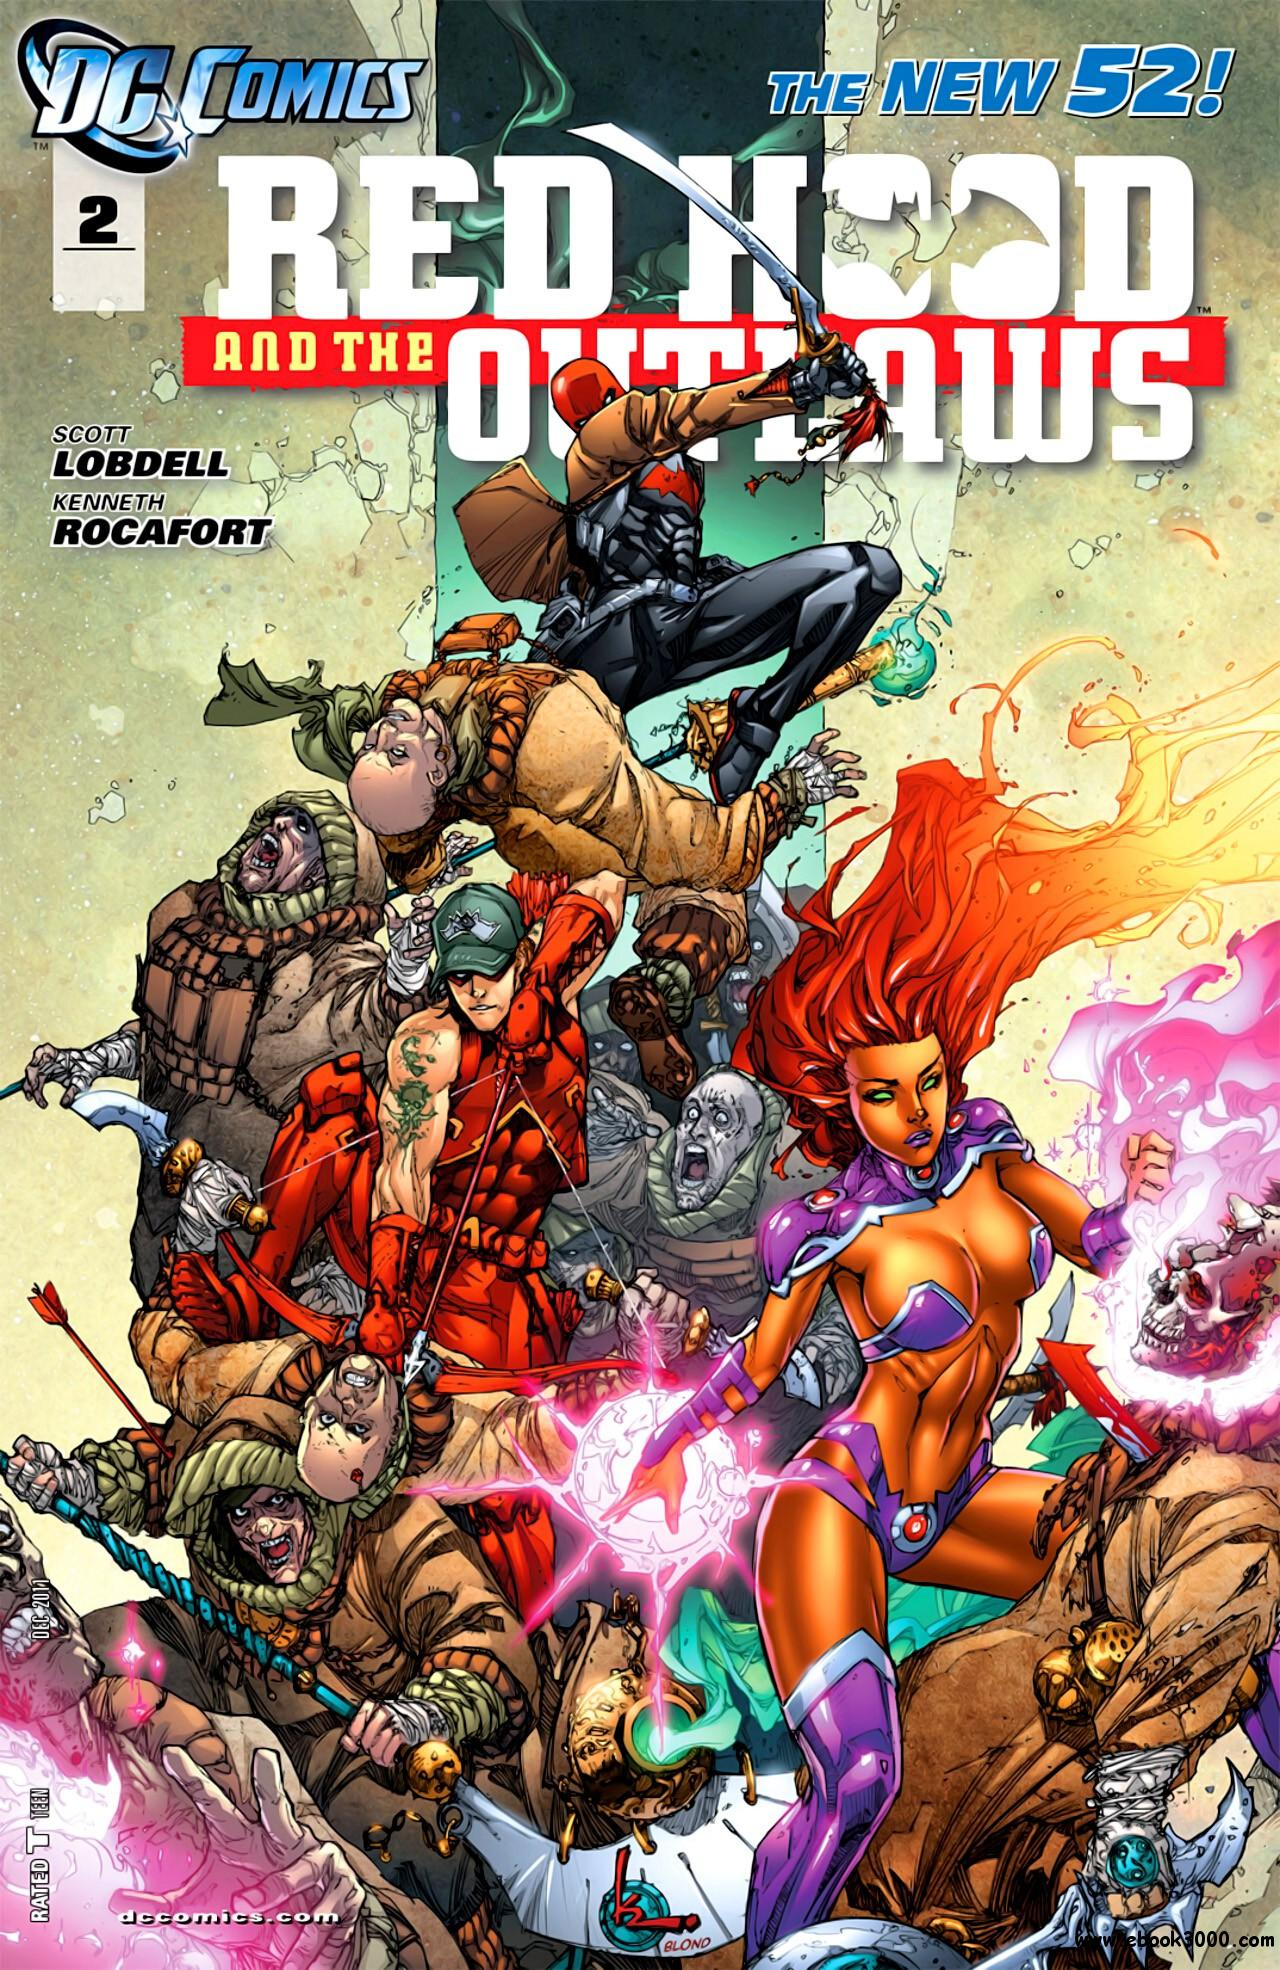 Red Hood and the Outlaws #2 (2011) free download